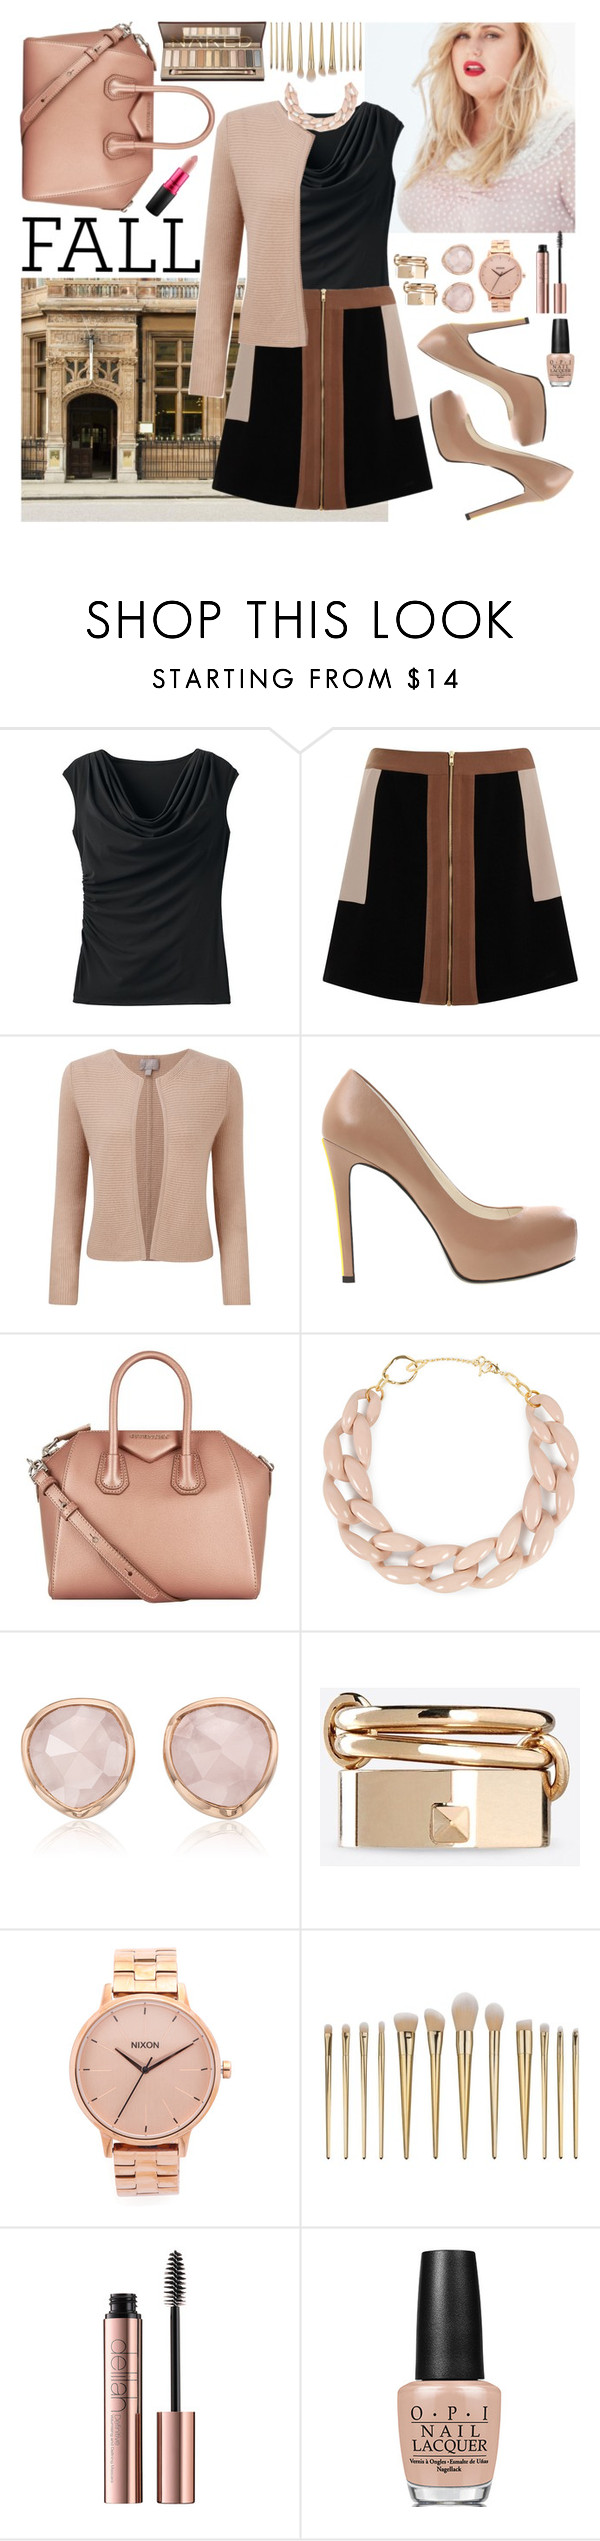 """Fall in the City"" by paperdollsq ❤ liked on Polyvore featuring TravelSmith, Elvi, Pure Collection, Alepel, Givenchy, DIANA BROUSSARD, Monica Vinader, Valentino, Nixon and OPI"